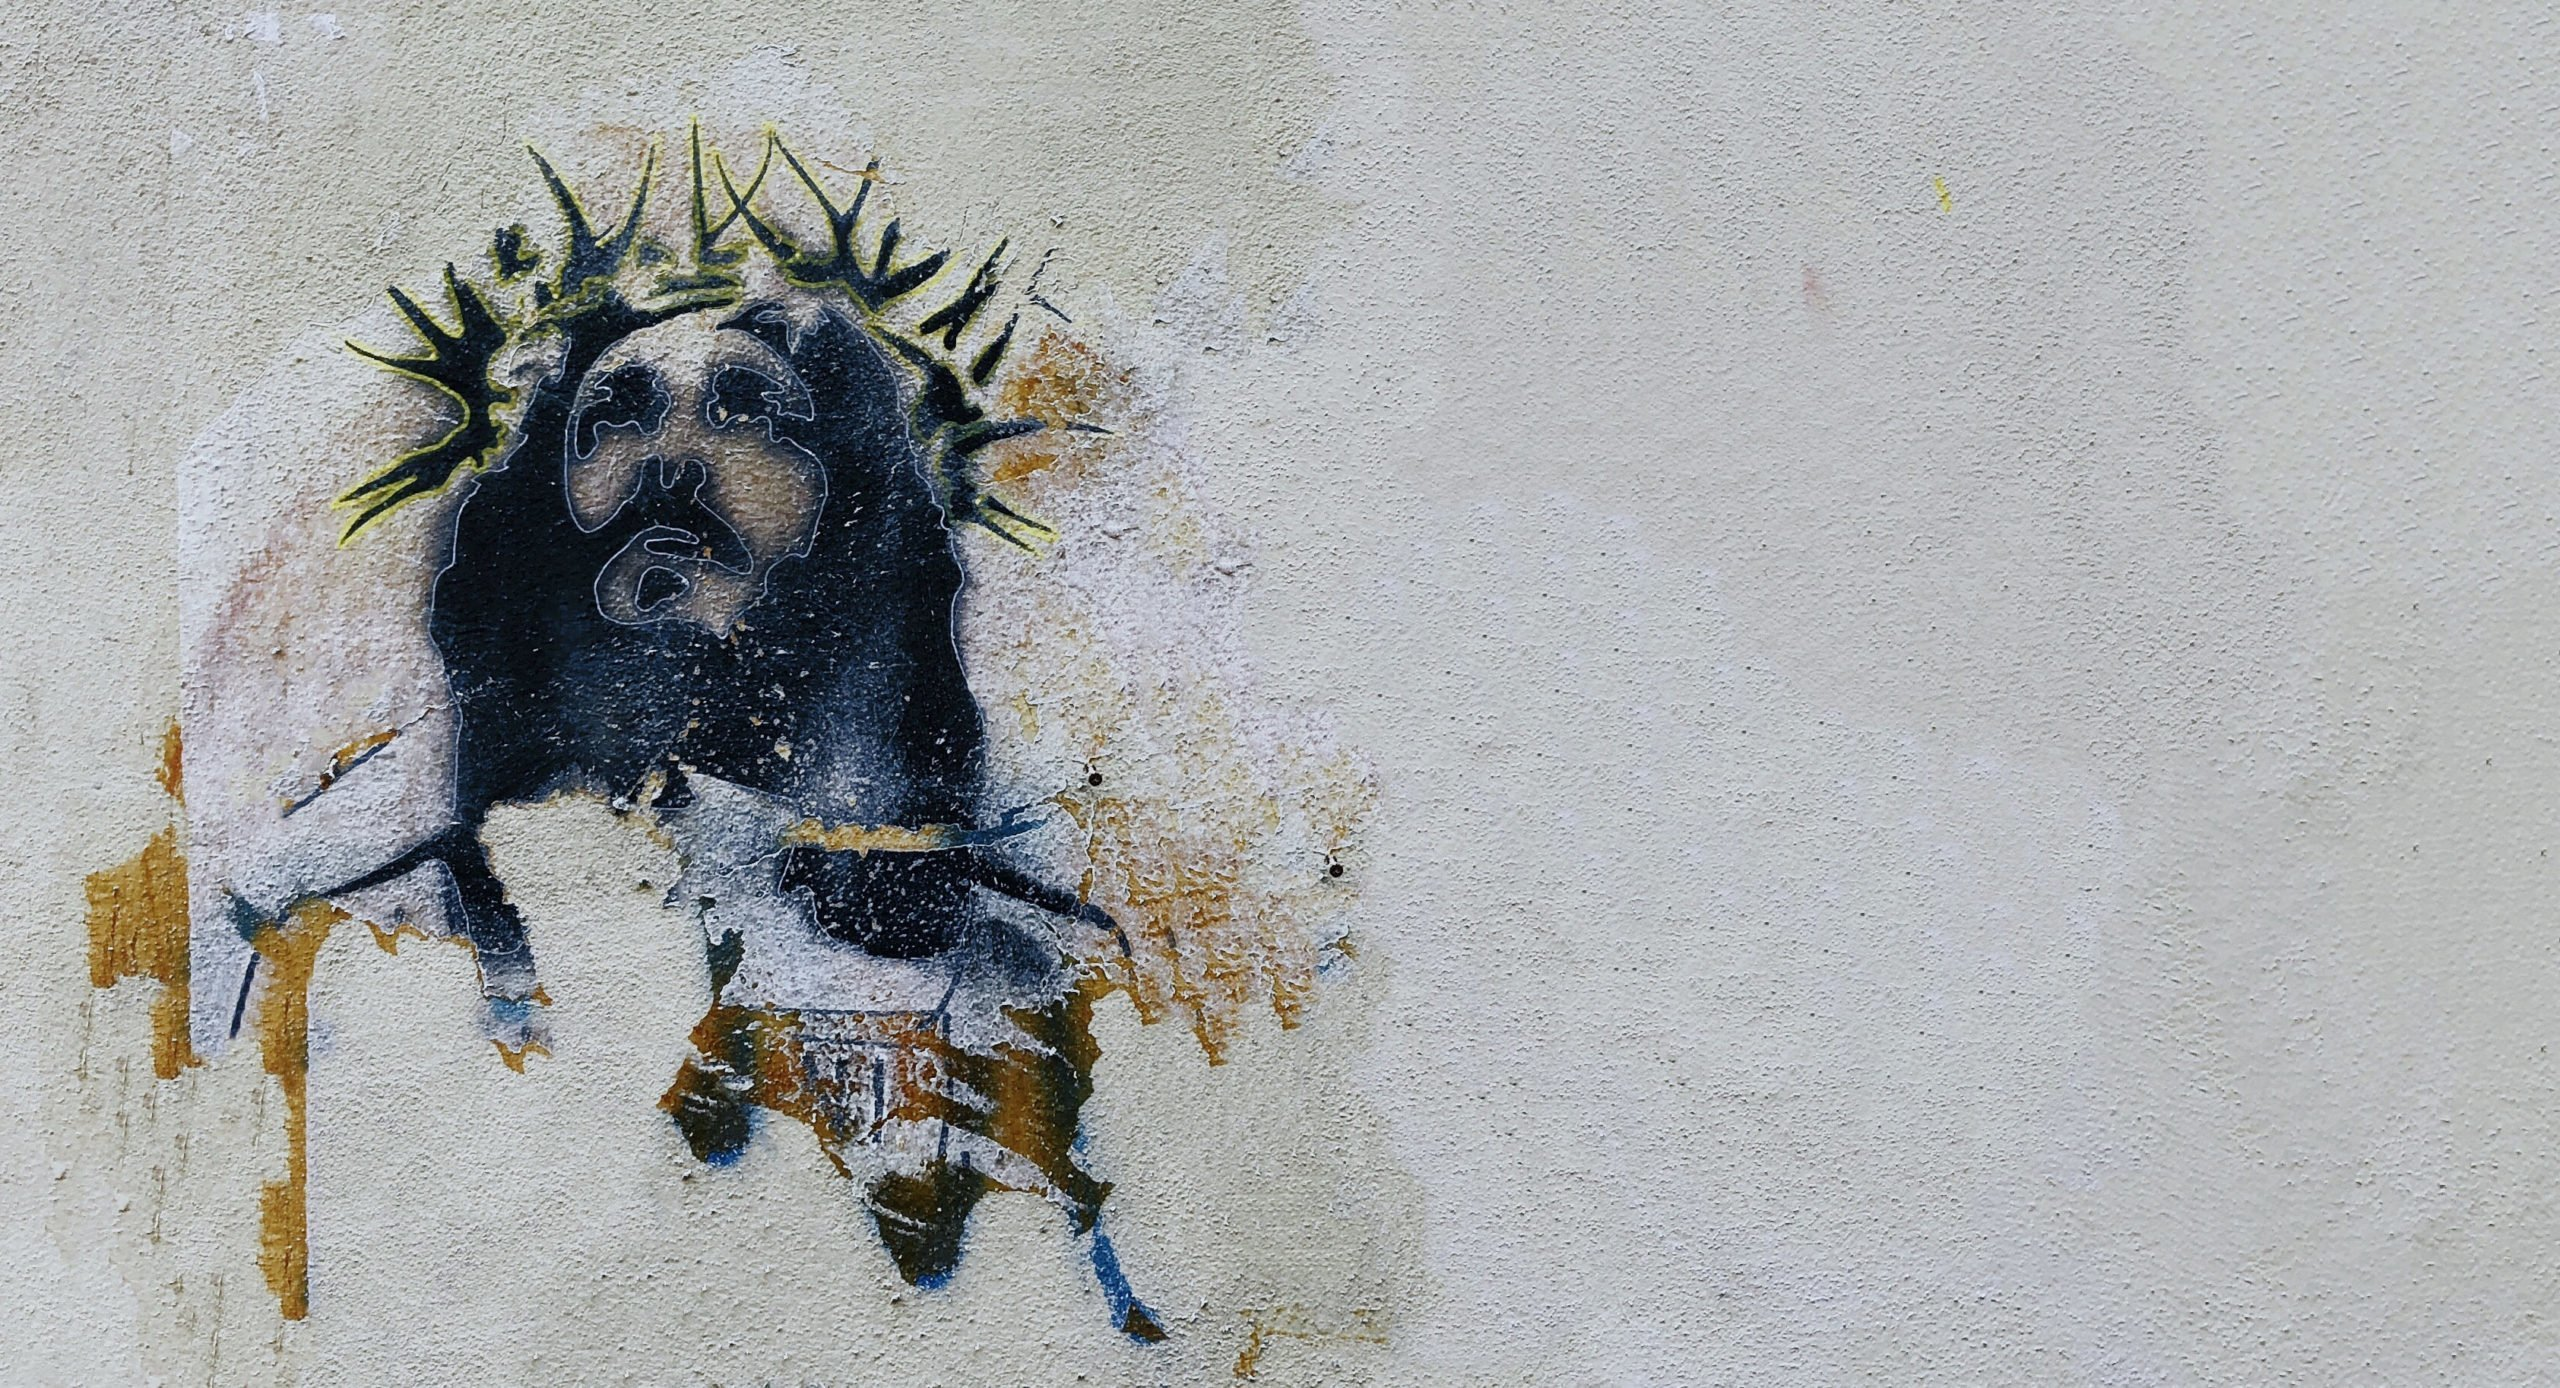 Jesus - graffiti